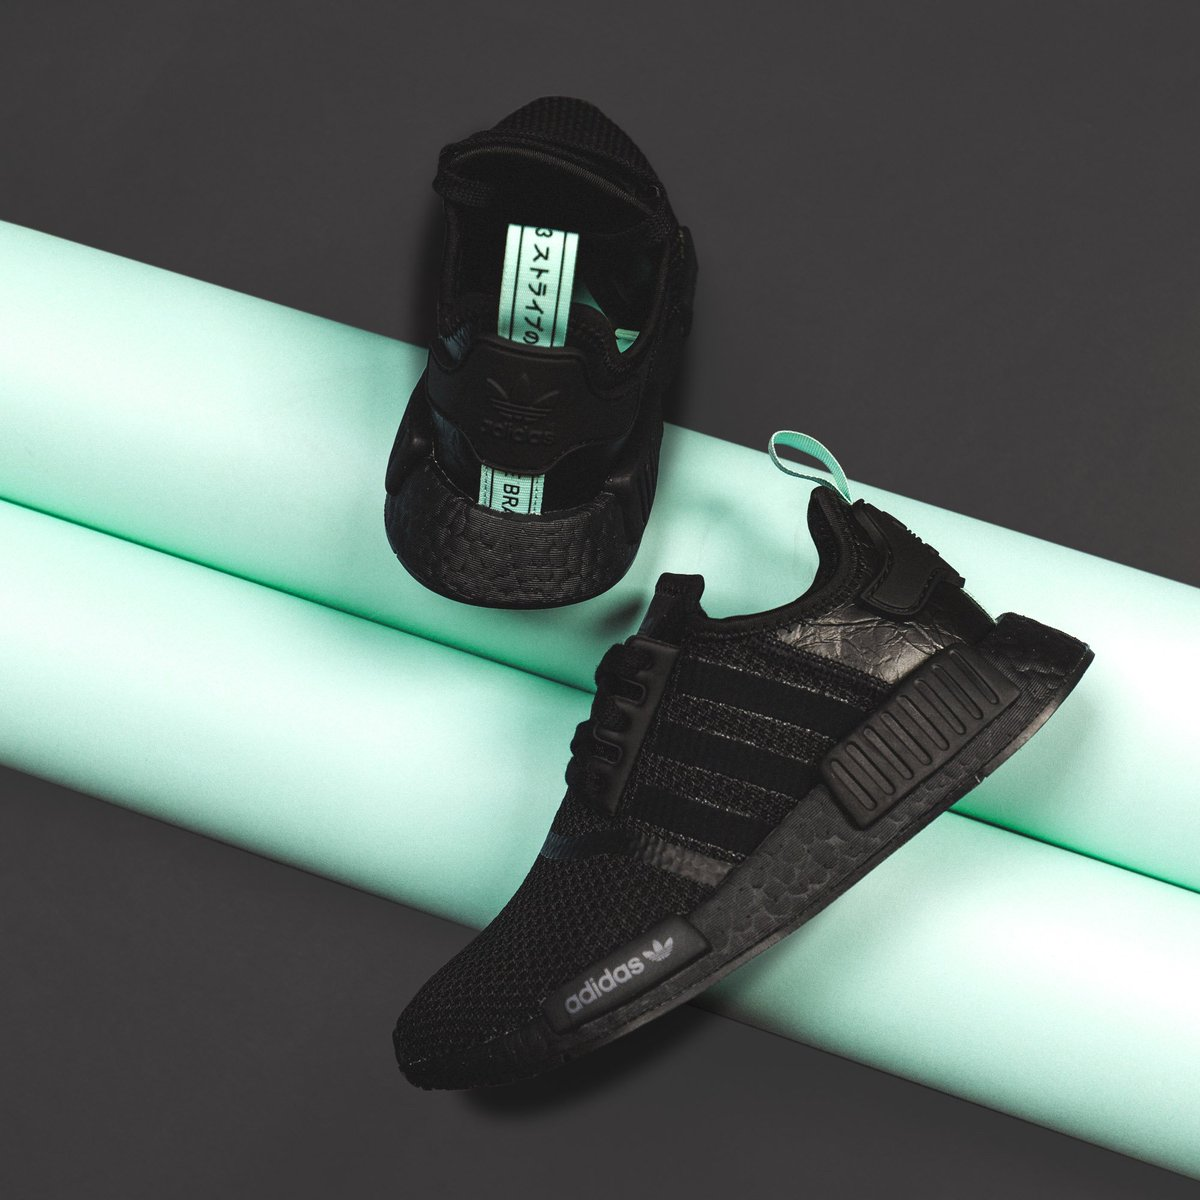 57e1eaa5bc7f8 The women s Adidas NMD R1 in core black   clear mint is available now at  https   buff.ly 2Msaiq0 .pic.twitter.com 9KZzyw126f